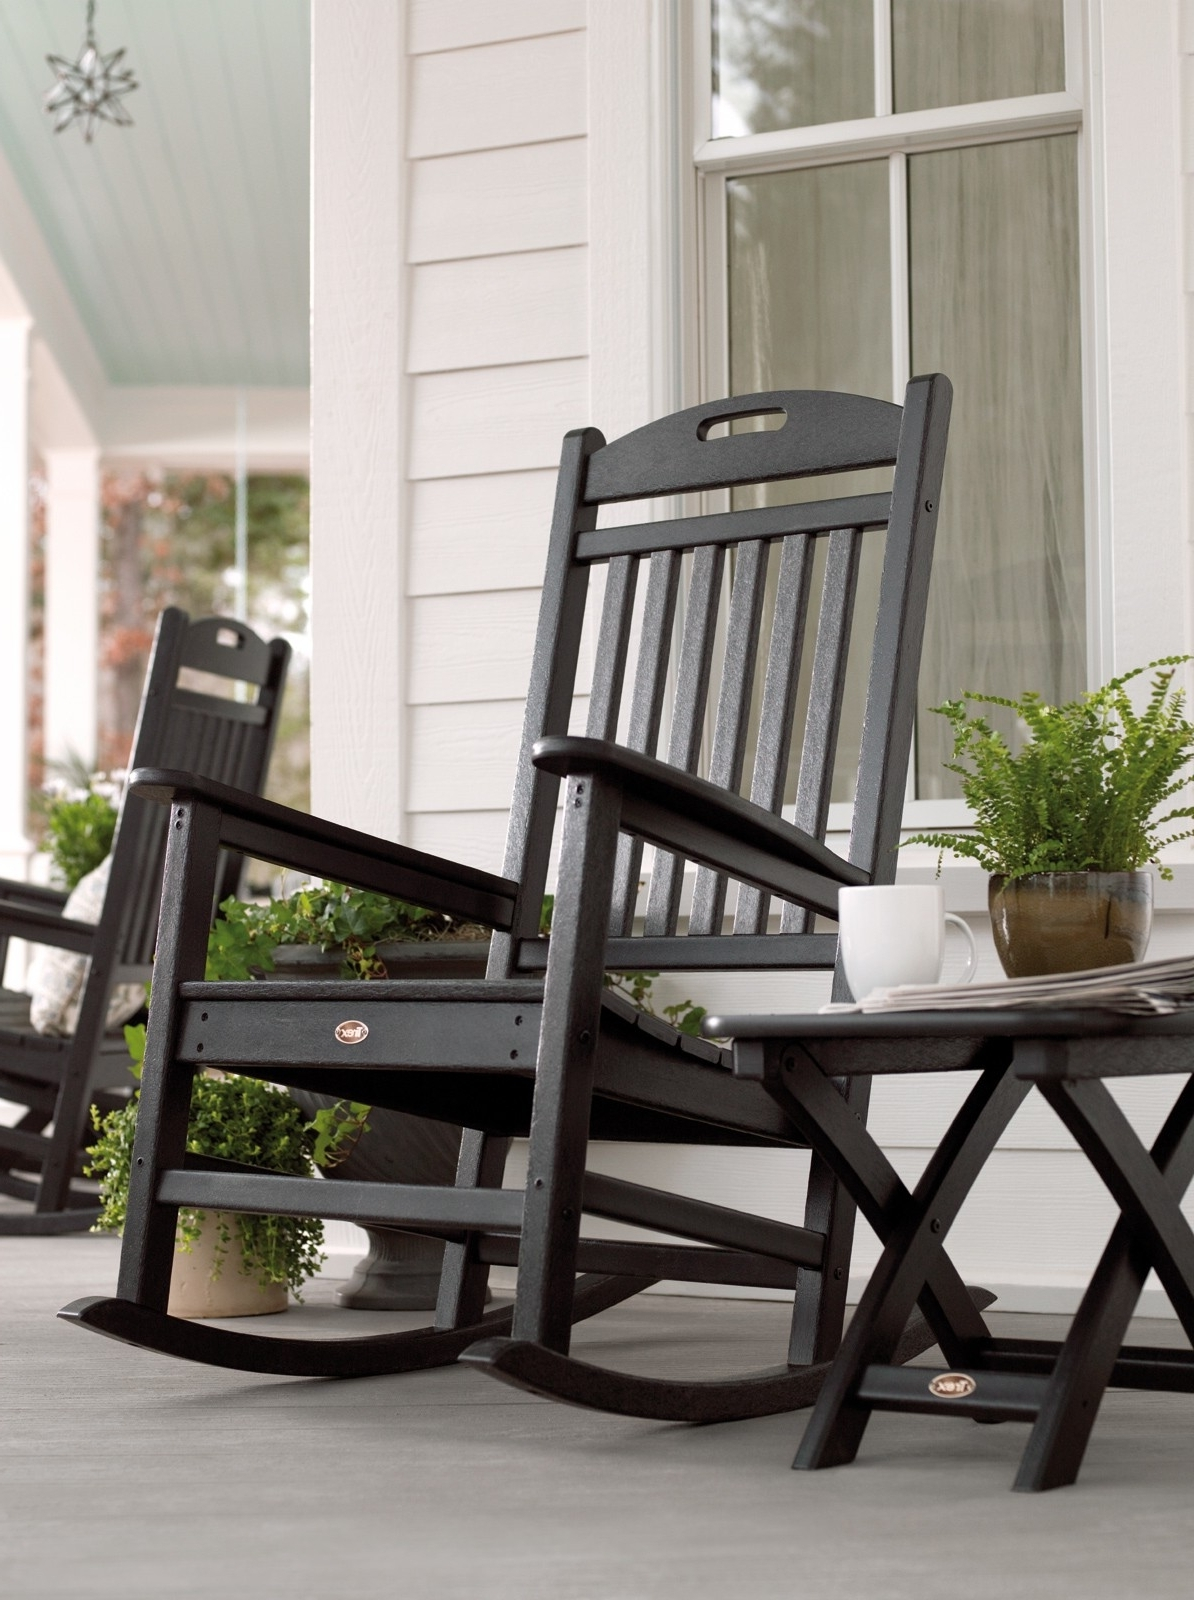 Famous Outdoor Rocking Chairs With Cushions Inside Patio & Garden : Outdoor Rocking Chair Seat Cushions Outdoor Rocking (View 6 of 20)